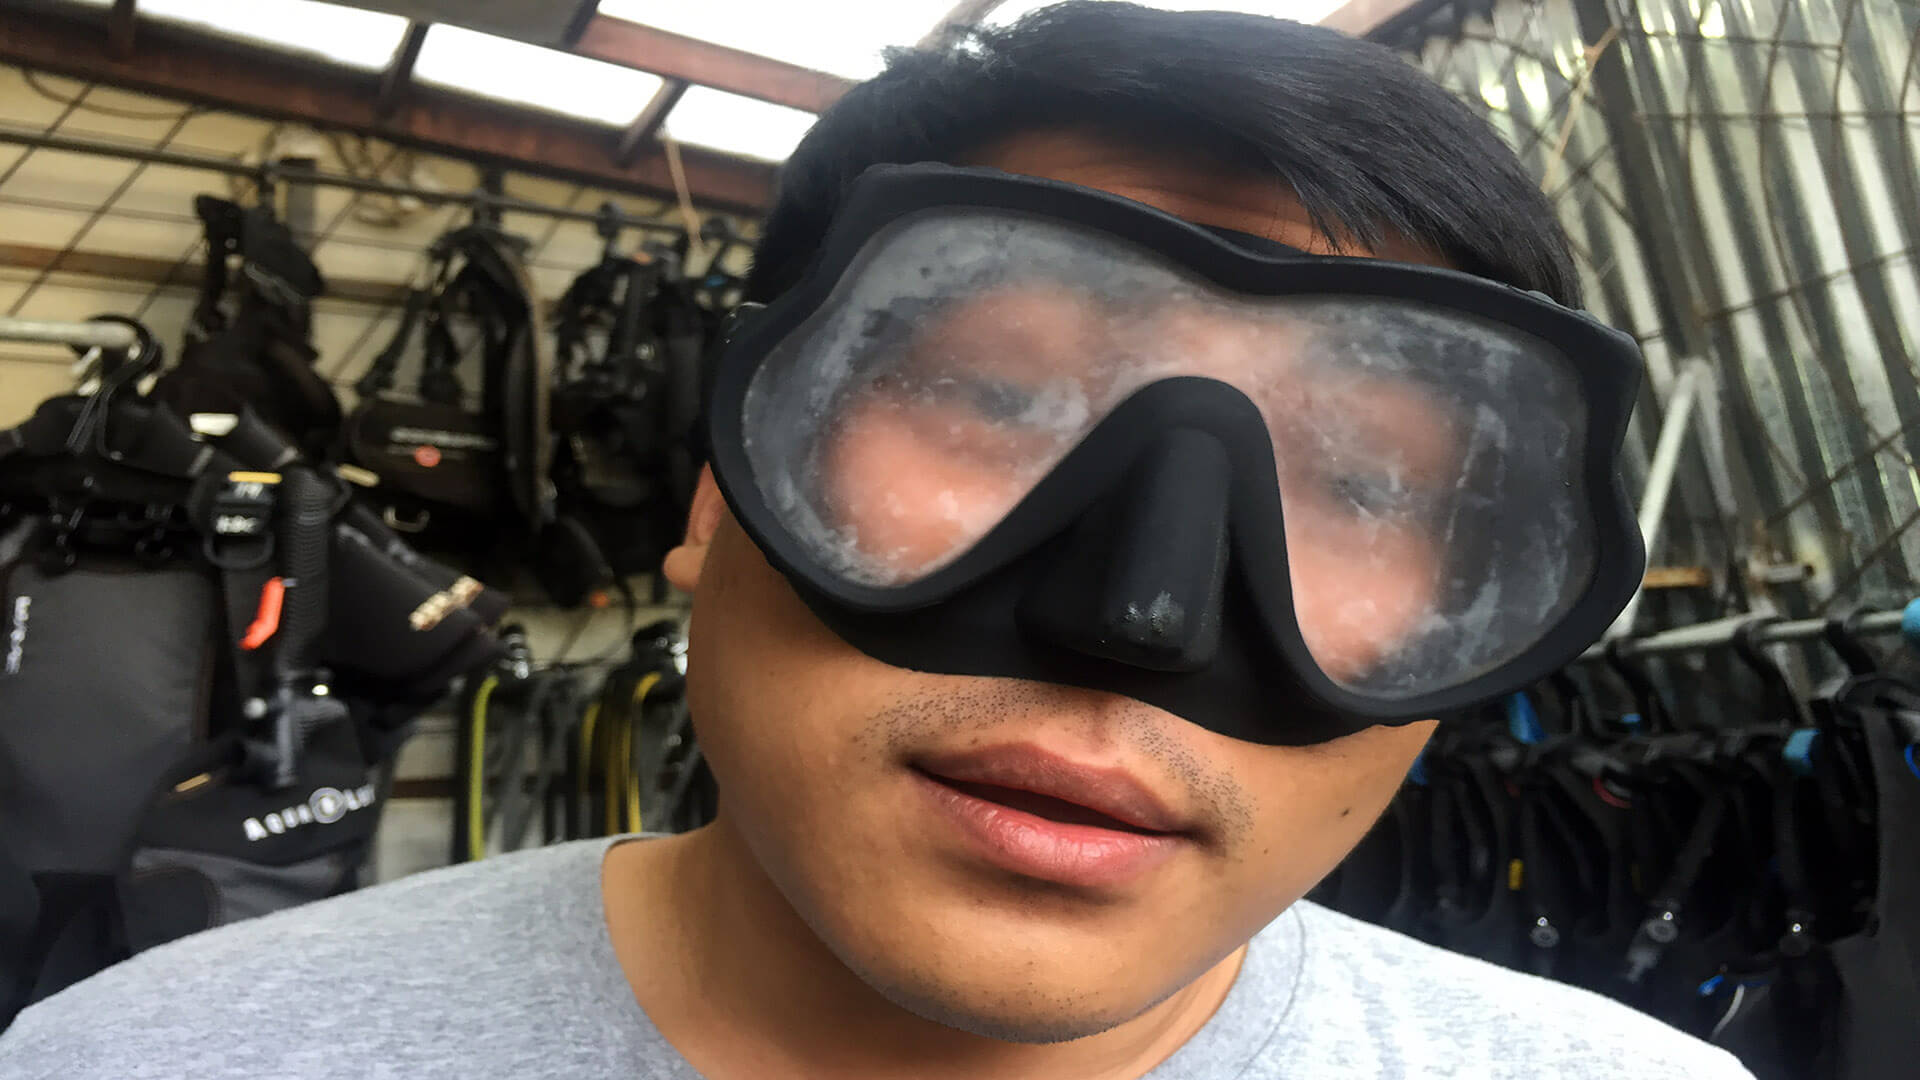 How To Prevent Your Scuba Diving Mask From Fogging